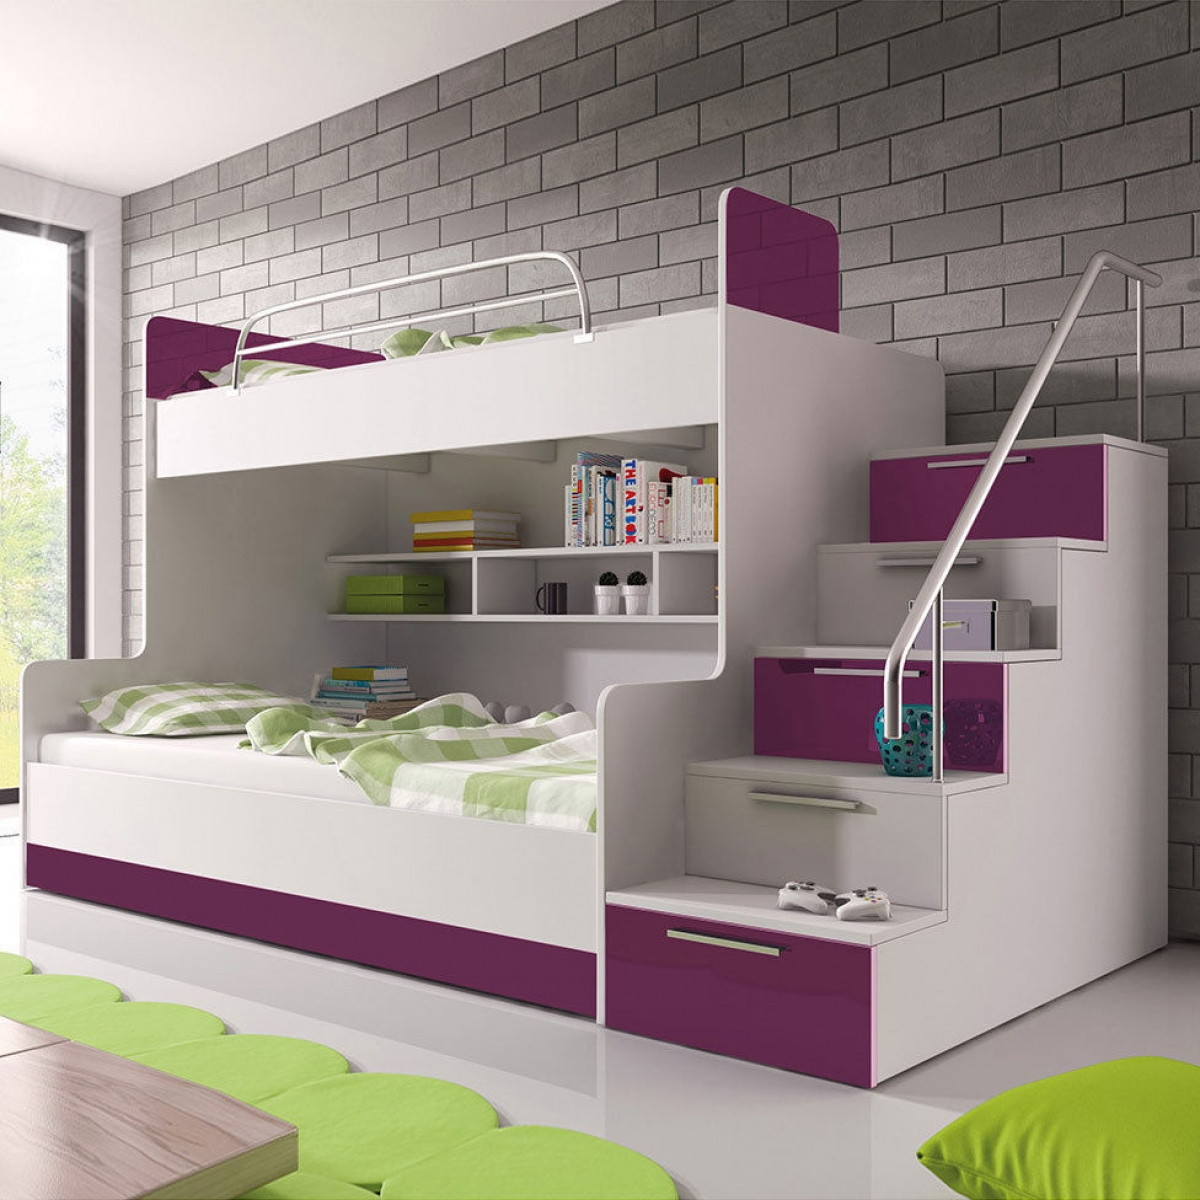 hochbett 2 kinder alle ideen ber home design. Black Bedroom Furniture Sets. Home Design Ideas